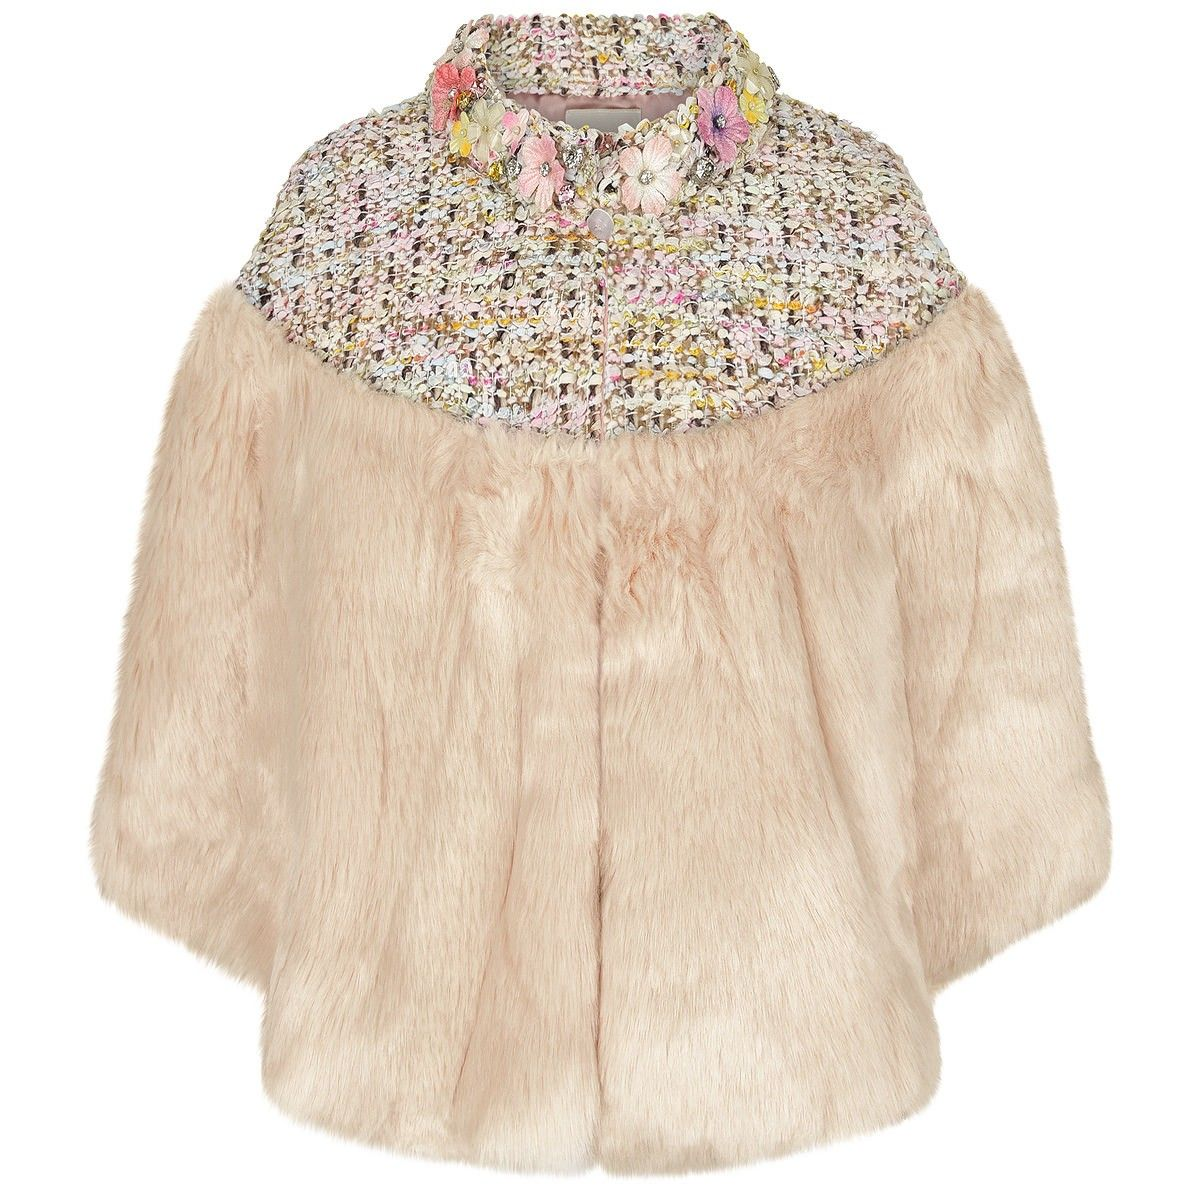 Mischka Aoki 'The Sweetest' Faux Fur Stole With Swarovski Crystals